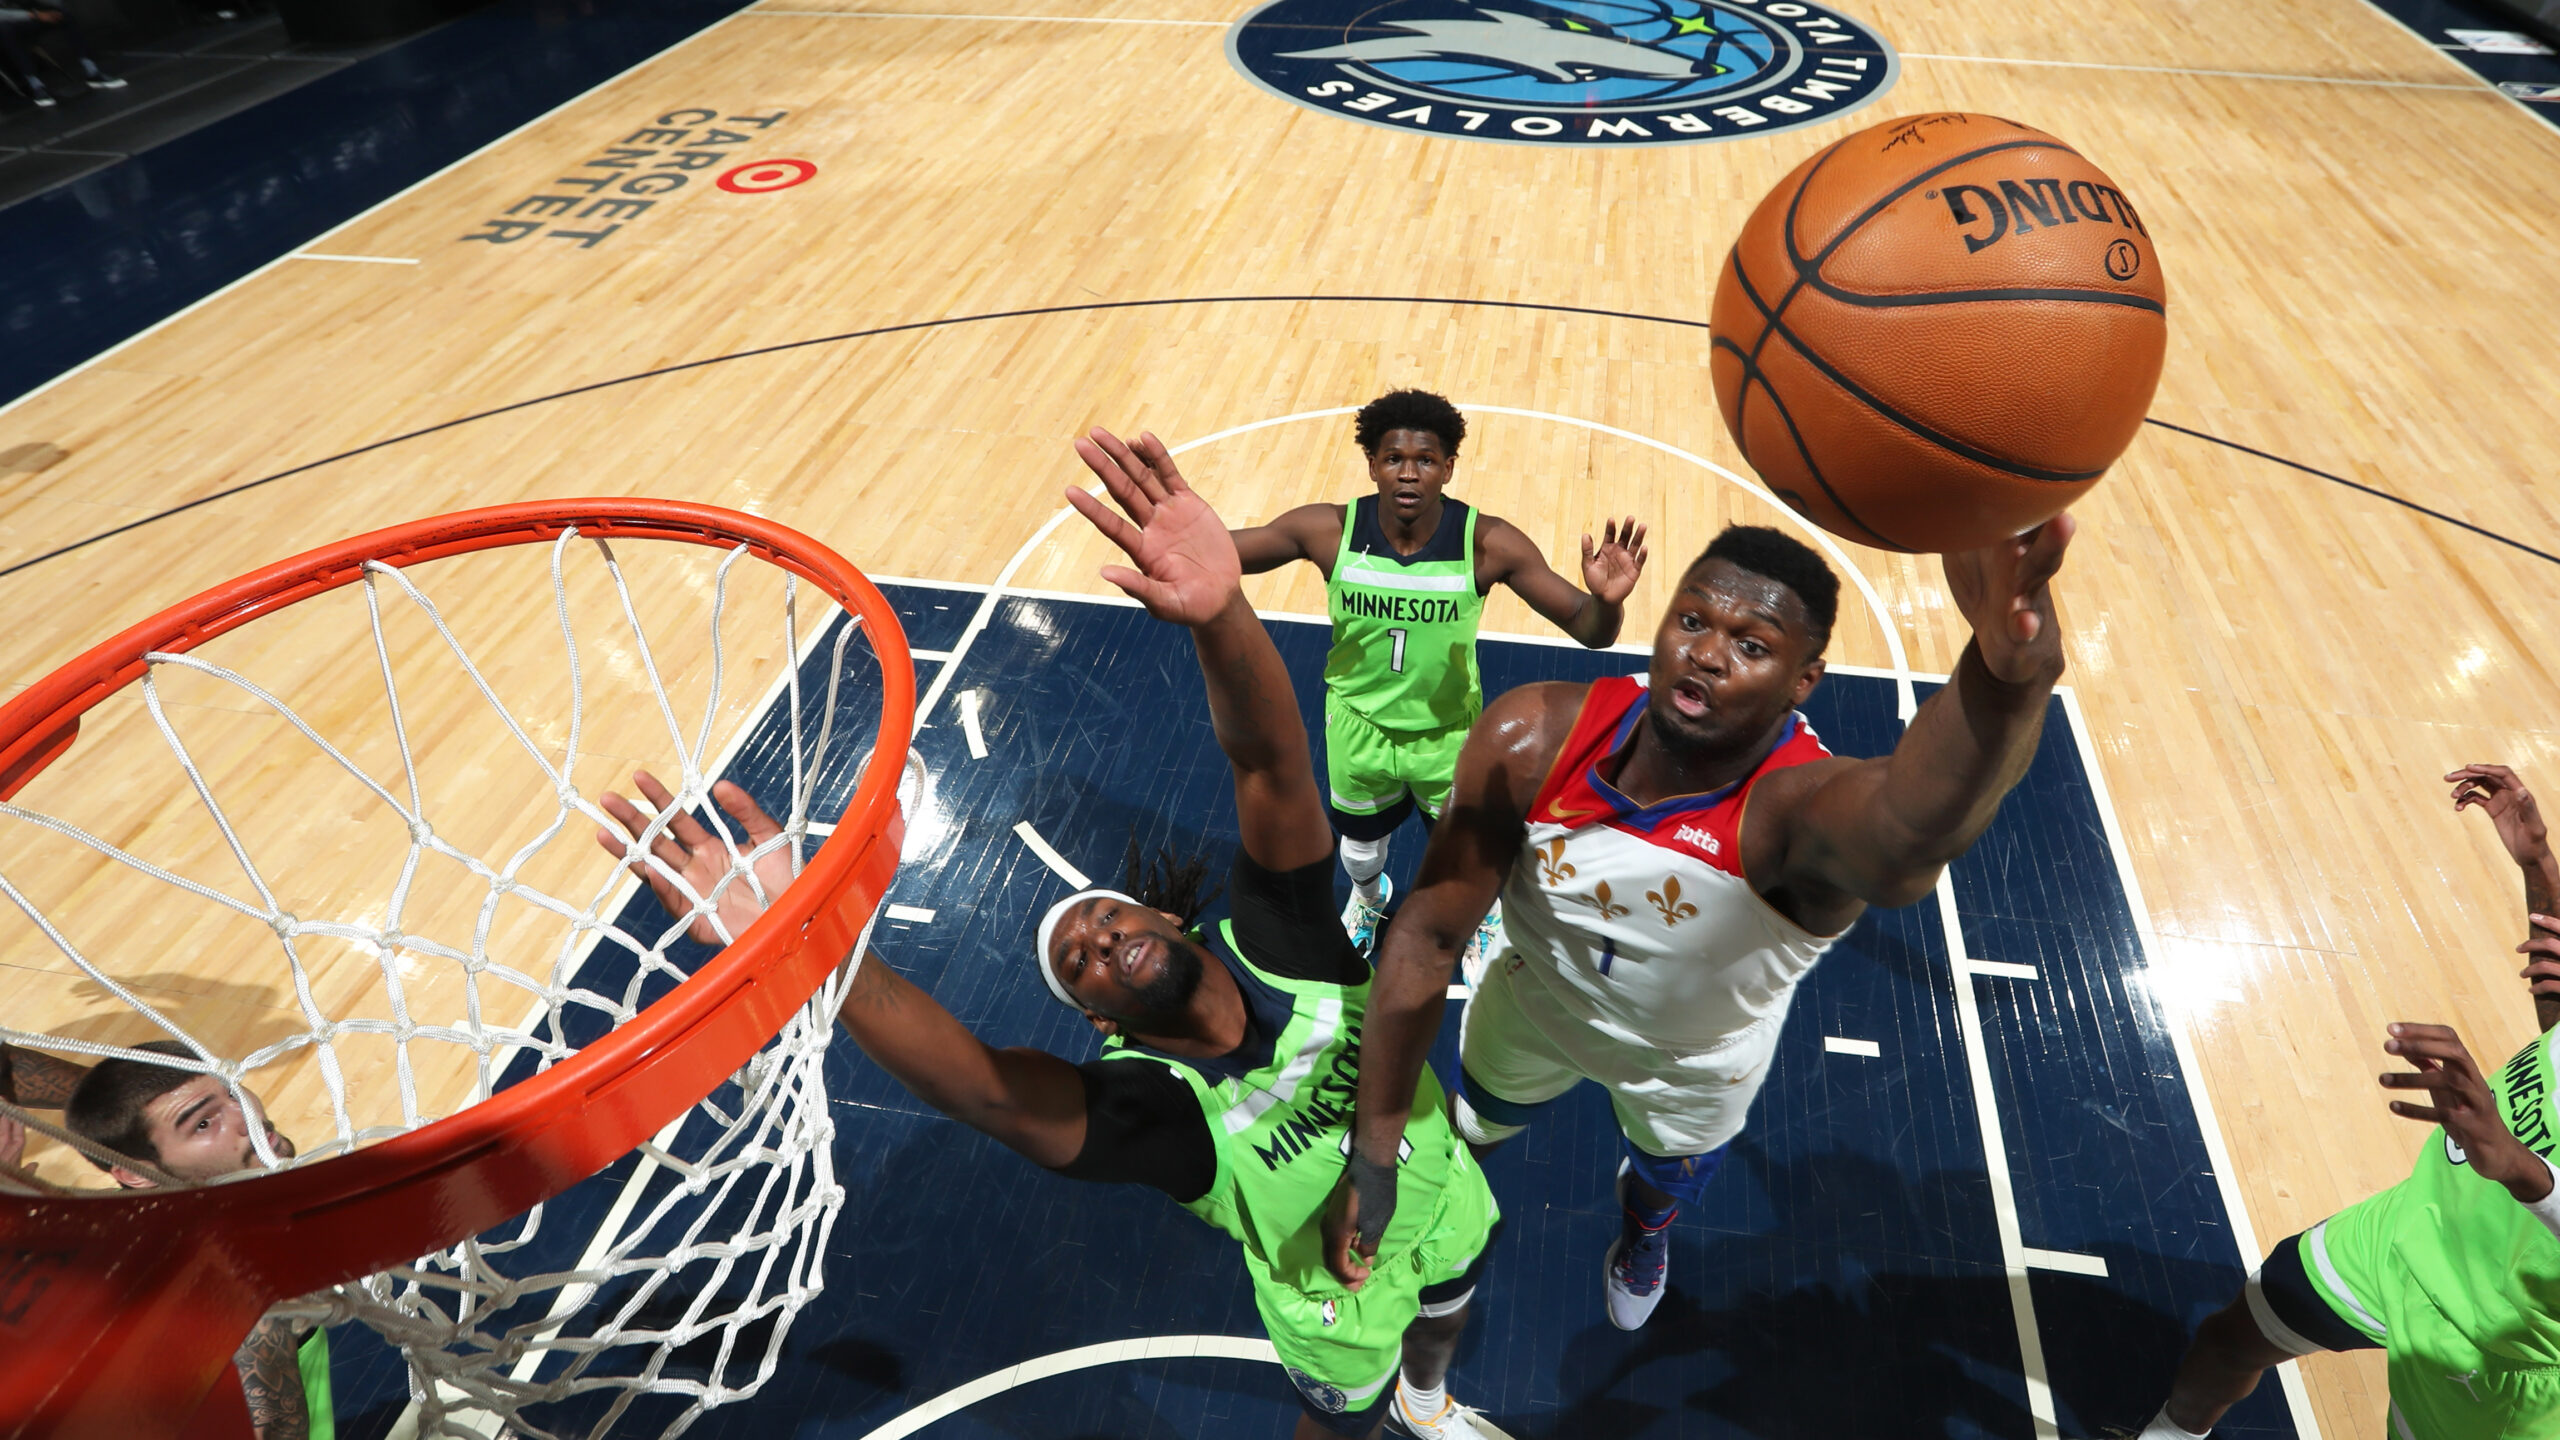 Pelicans Stat Leader Highlights: Zion Williamson leads team with 37 points vs. Minnesota Timberwolves